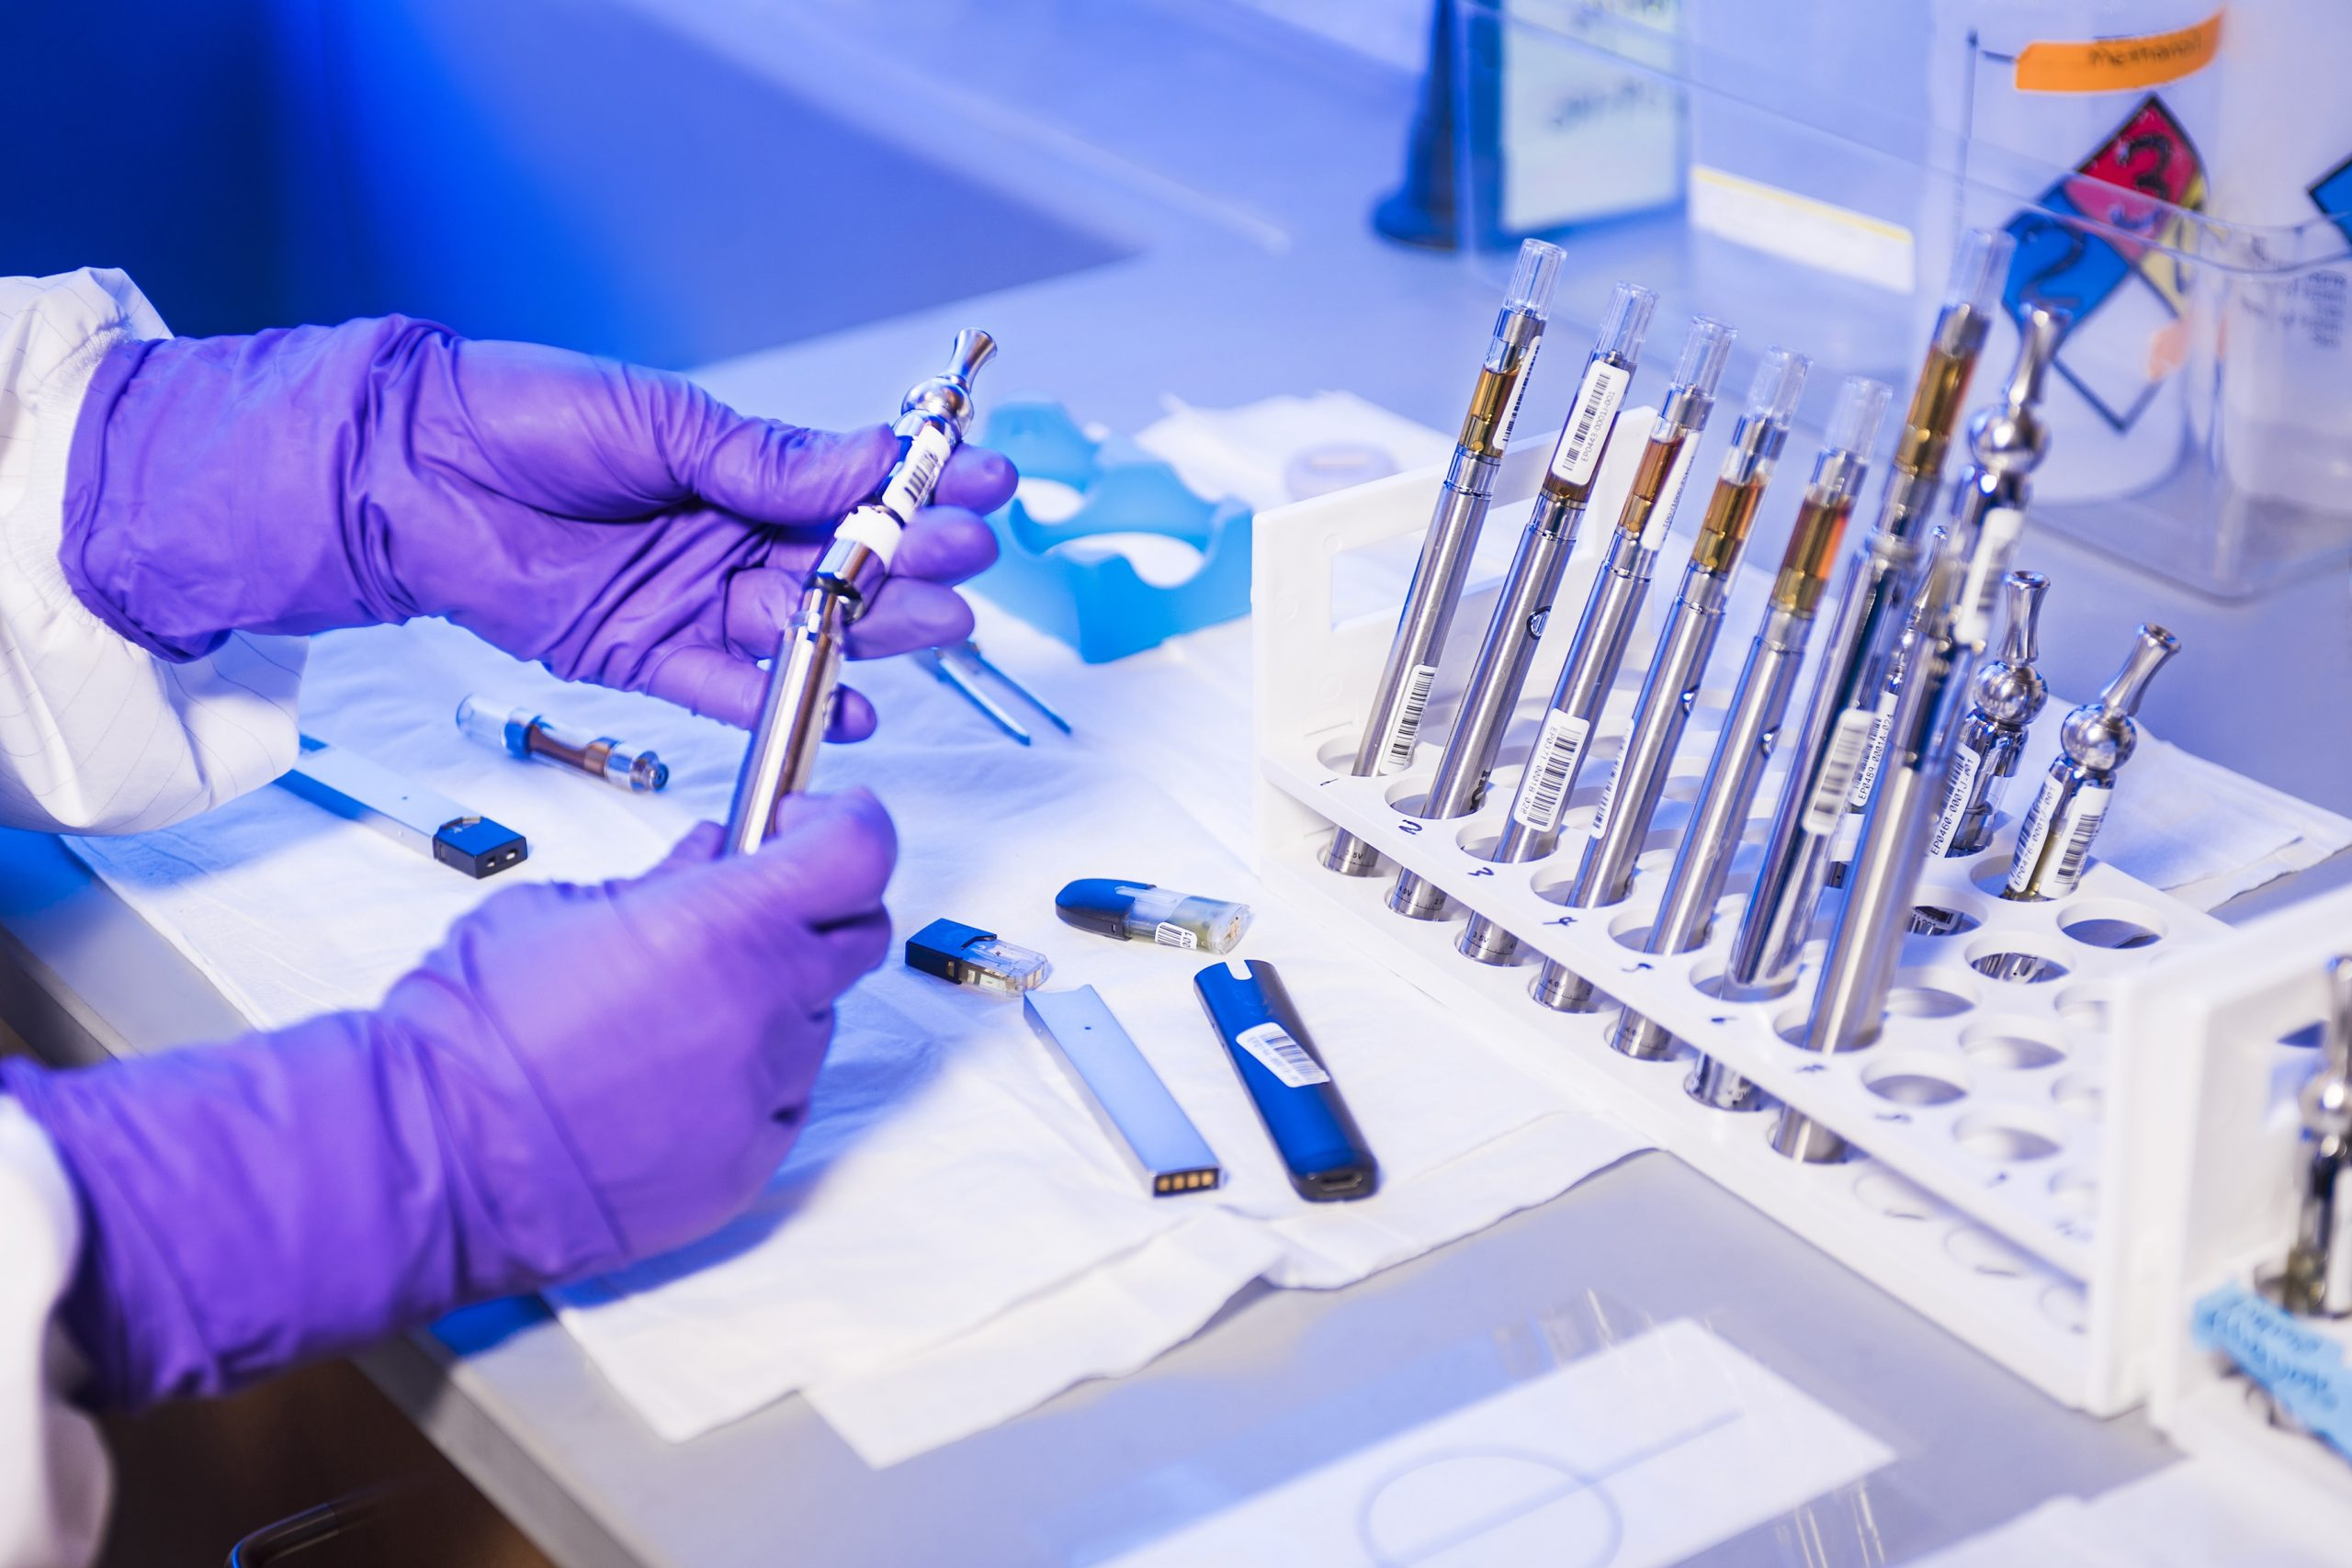 e-cigarettes and vaping products being tested in a science laboratory